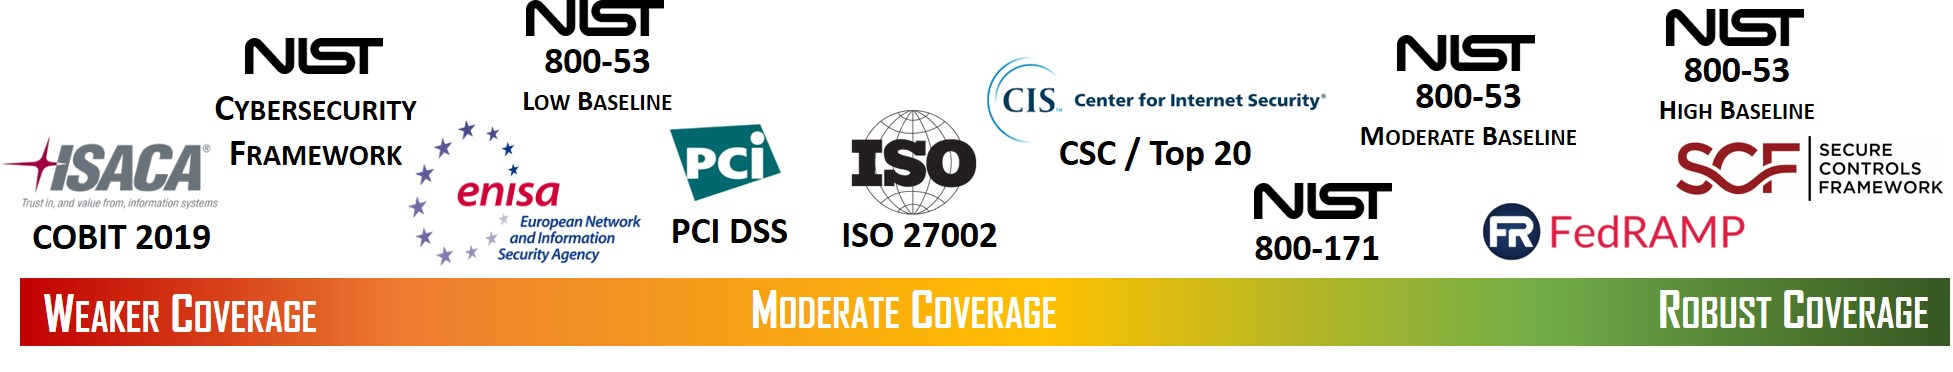 2020-cybersecurity-goldilocks-spectrum-nist-csf-iso-27002-nist-800-53-scf.jpg